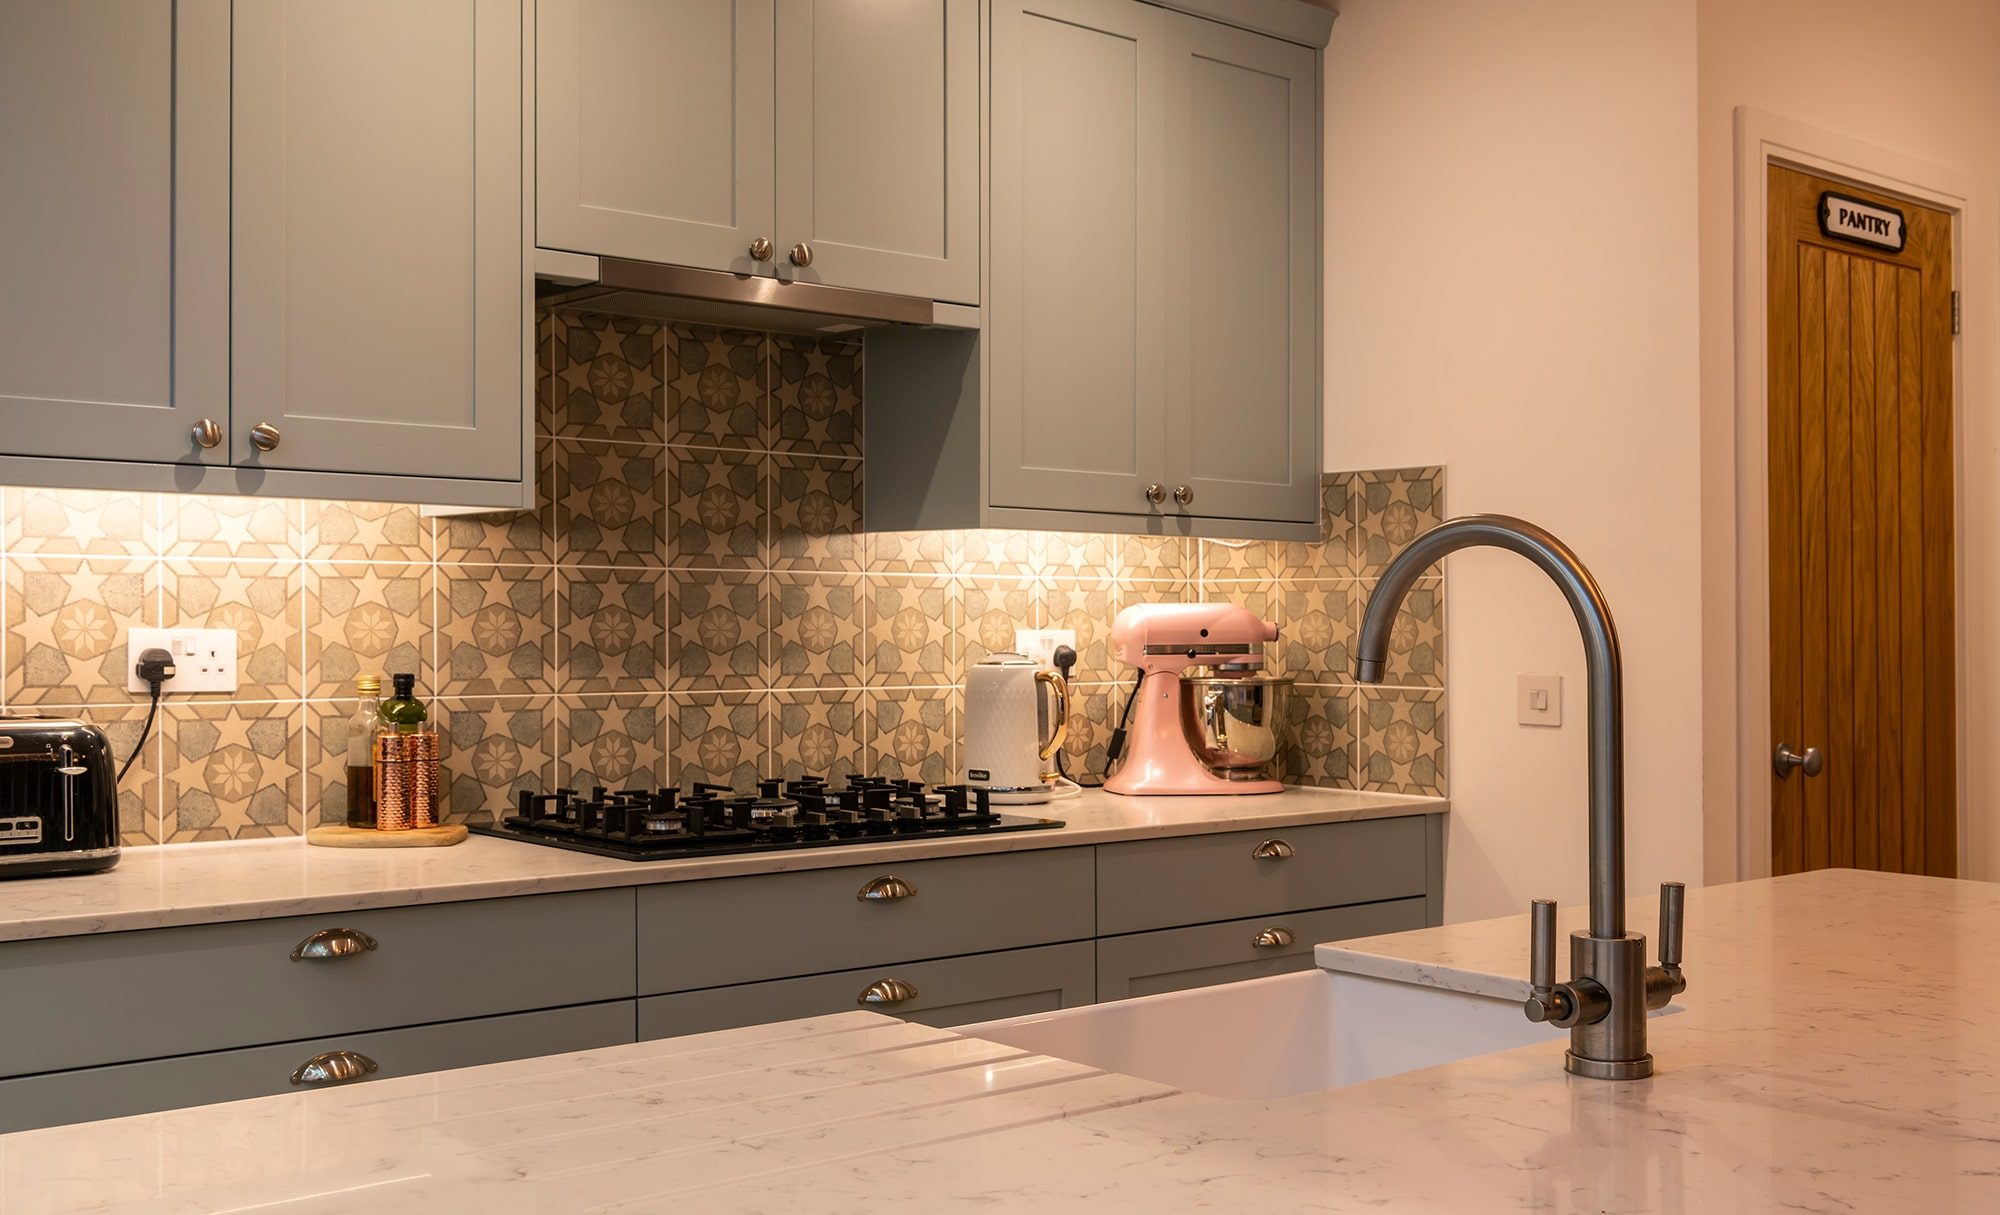 Aldana Shaker Kitchen for a home in Portishead by Portishead Kitchens